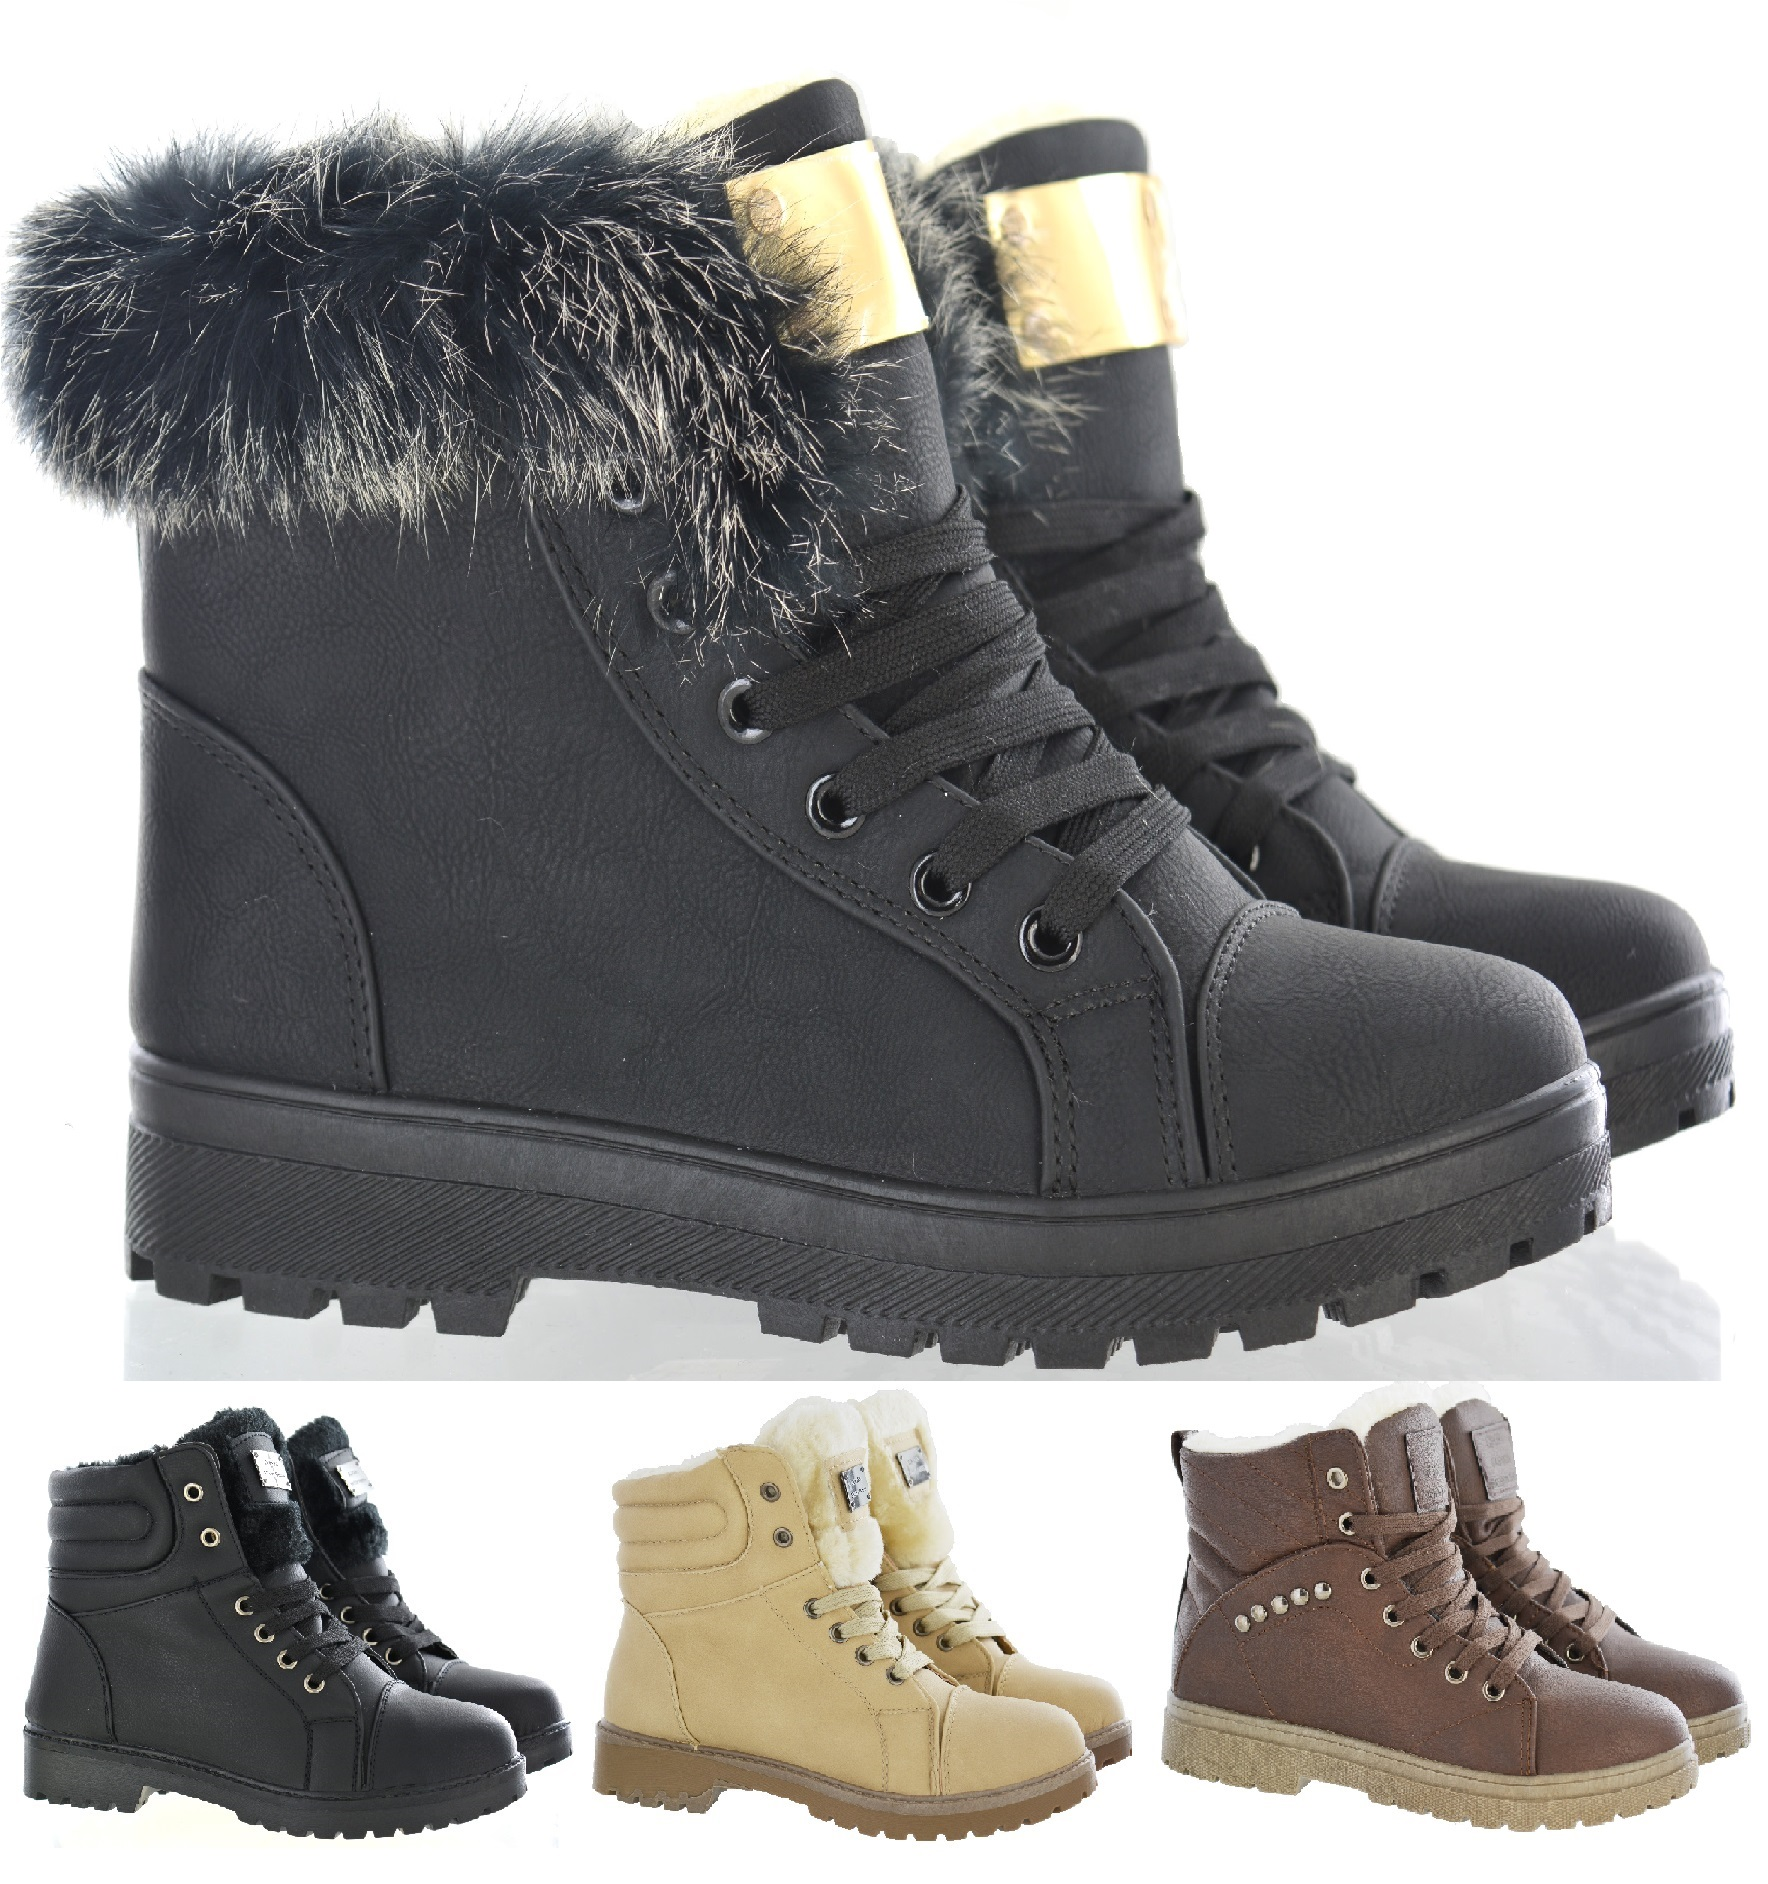 Fleece Lined Womens Boots with FREE Shipping & Exchanges, and a % price guarantee. Choose from a huge selection of Fleece Lined Womens Boots styles.